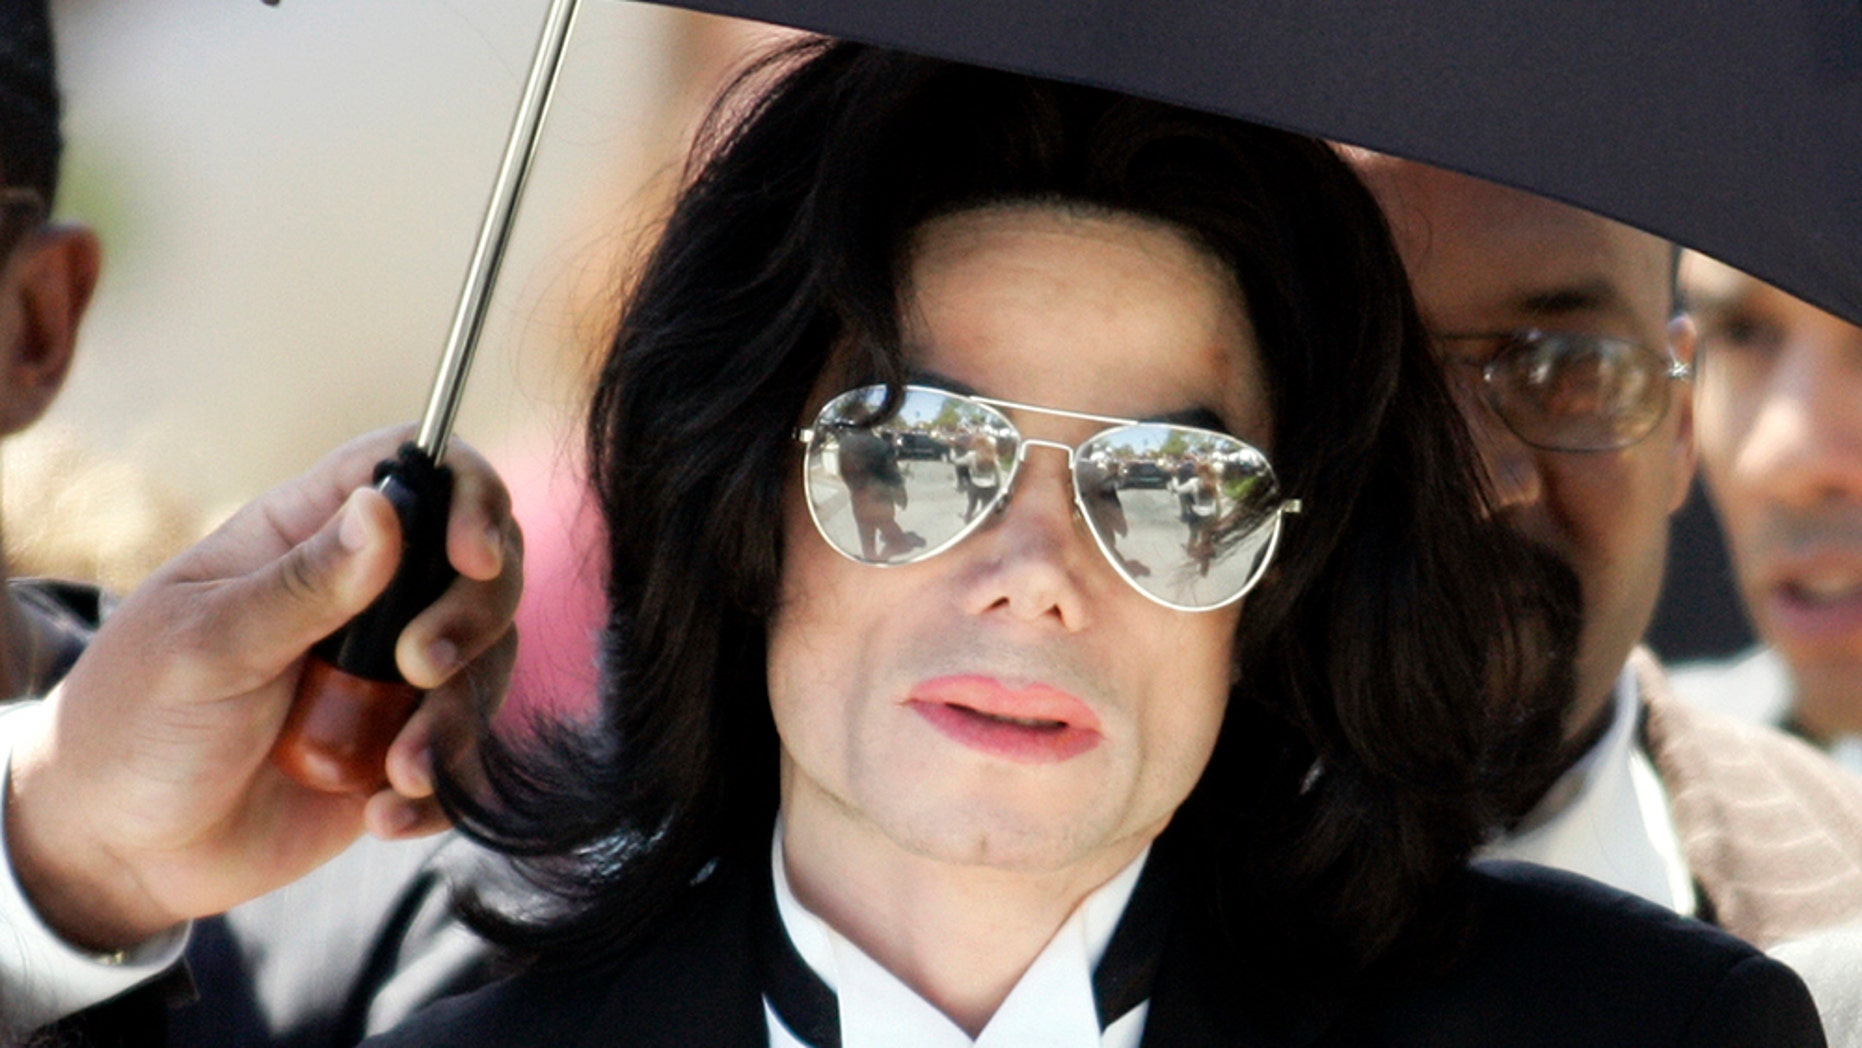 Michael Jackson leaves the Santa Barbara County Courthouse after being found not guilty on all ten counts of child molestation in Santa Maria, California in this June 13, 2005 file photo. Fans, museums and some members of Michael Jackson's family will mark Friday's one-year anniversary of the singer's death on June 25, 2010 with special exhibits, tributes and flash mob dances from Manila to Manhattan.  REUTERS/Gene Blevins/Files   (UNITED STATES - Tags: ENTERTAINMENT OBITUARY) - RTR2FLYL